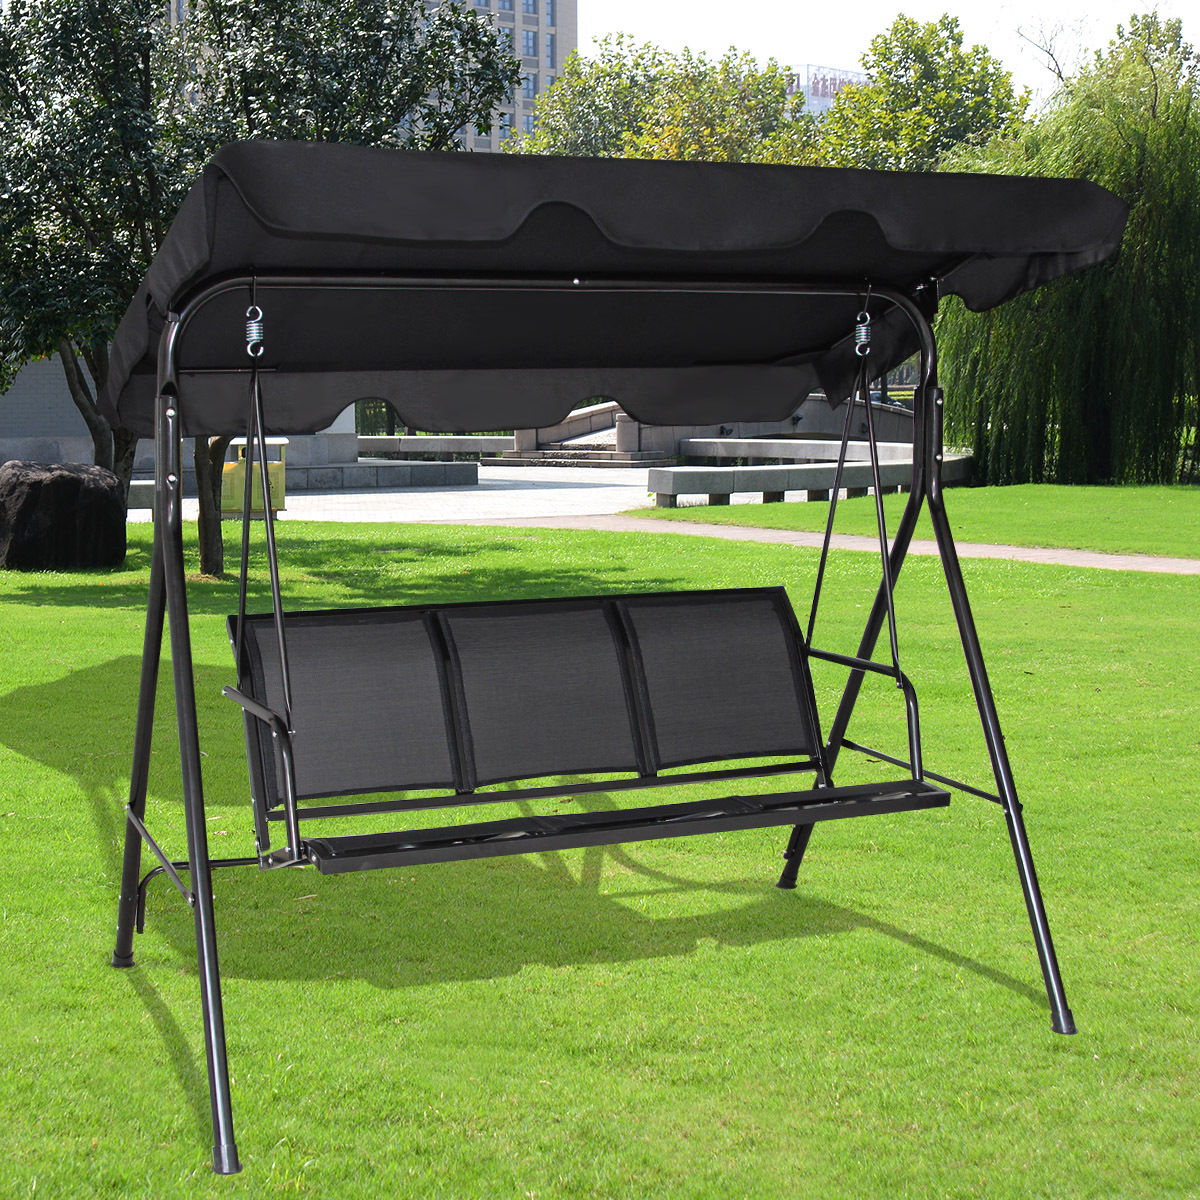 Costway Outdoor Patio Swing Canopy 3 Person Canopy Swing Chair Patio  Hammock Black 0